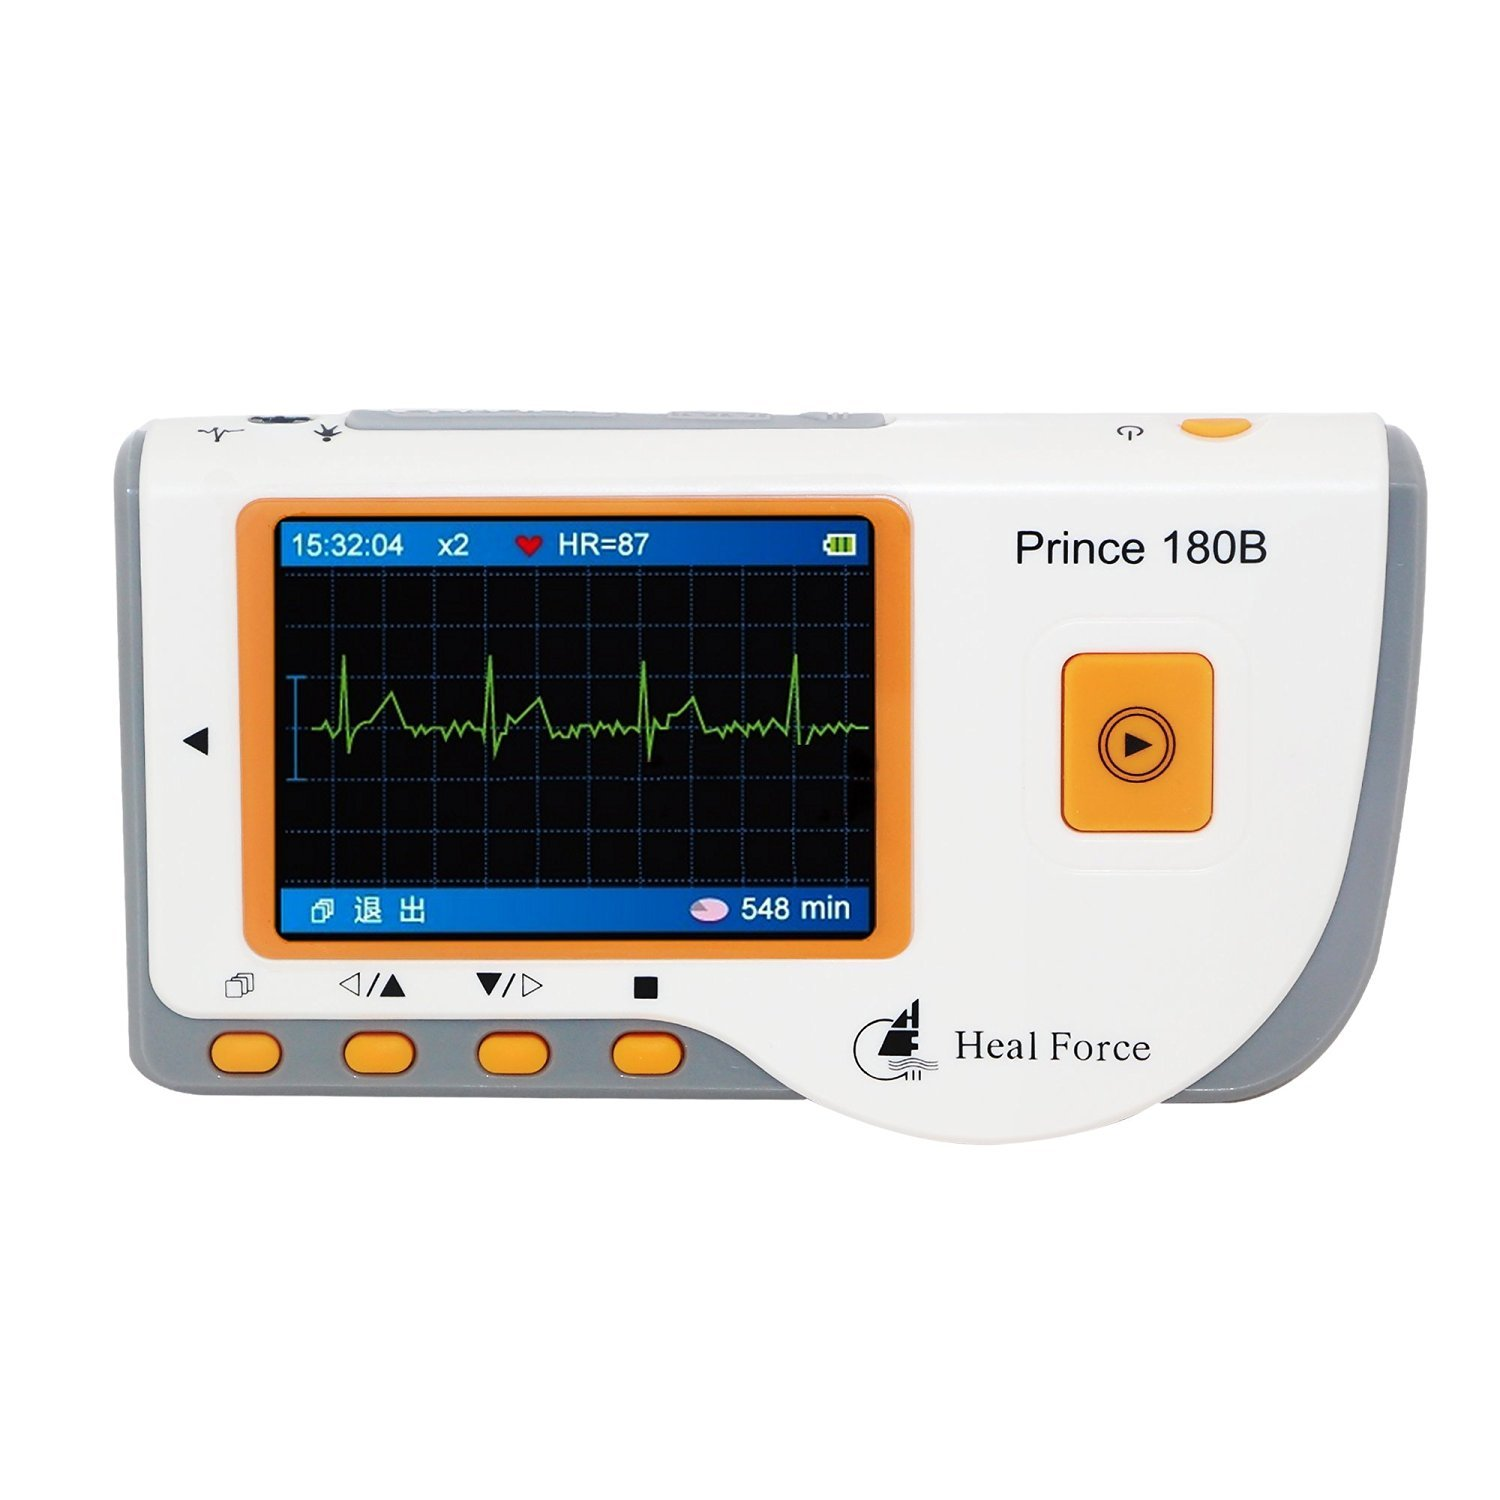 Heal Force Portable ECG Monitor, Model Prince 180B (FDA and CE Certified)